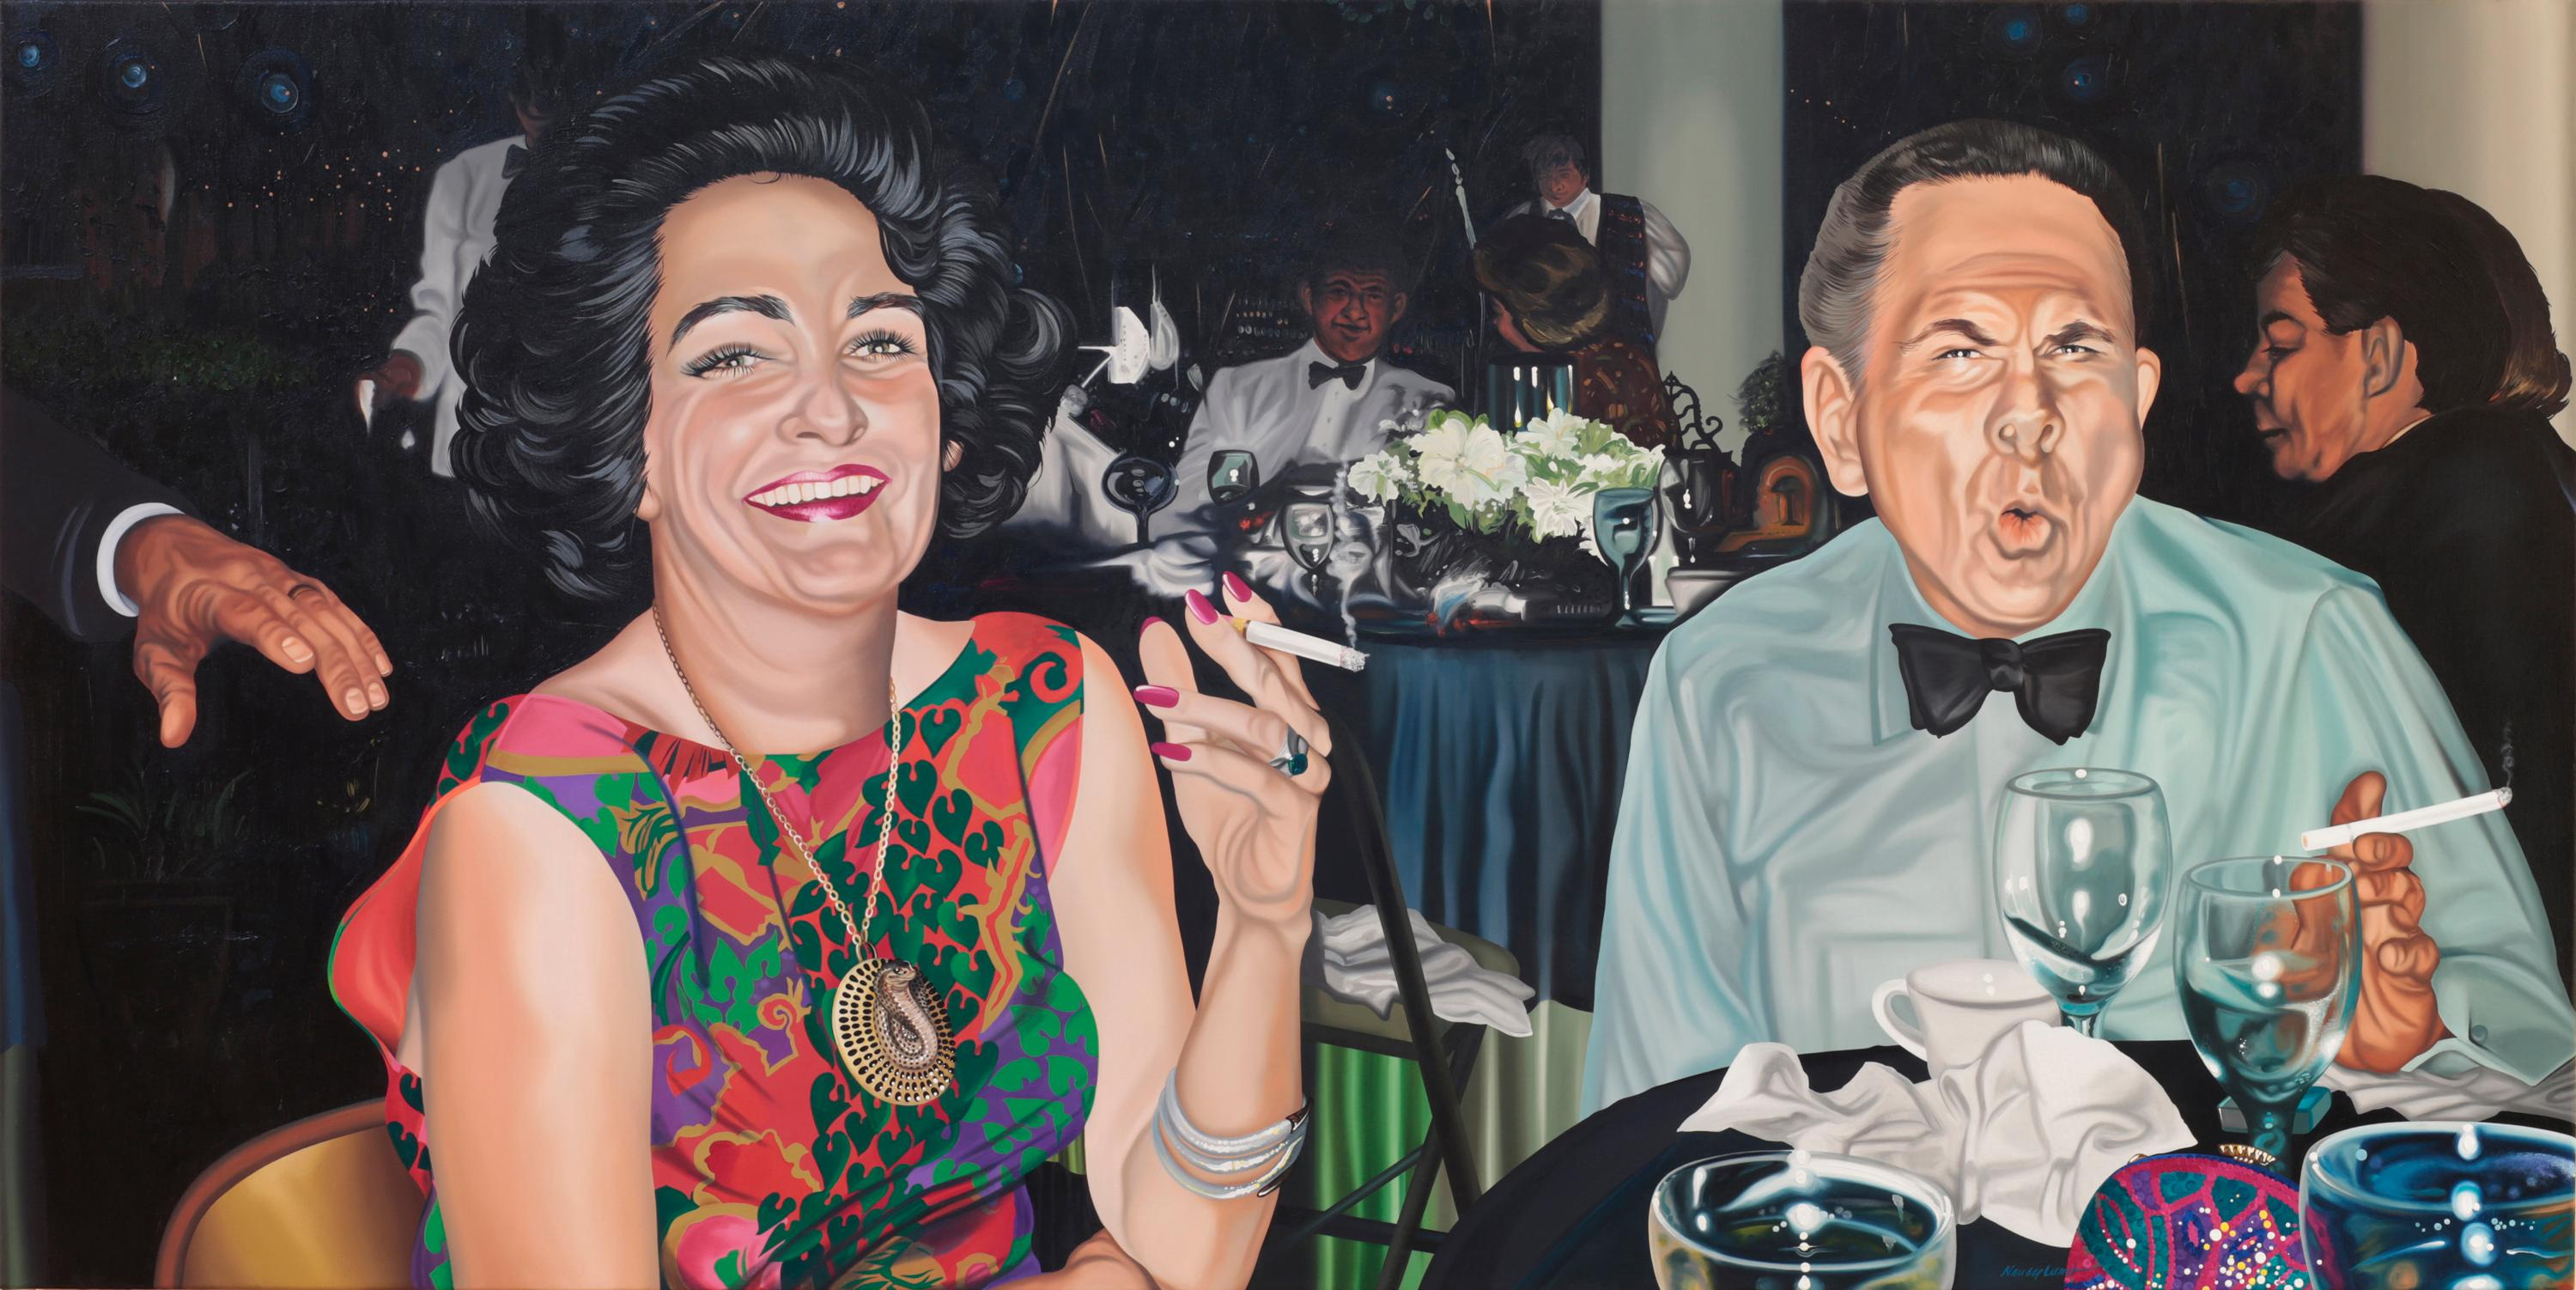 Large Contemporary Oil Portrait of Party People Smoking, Laughing, and Drinking